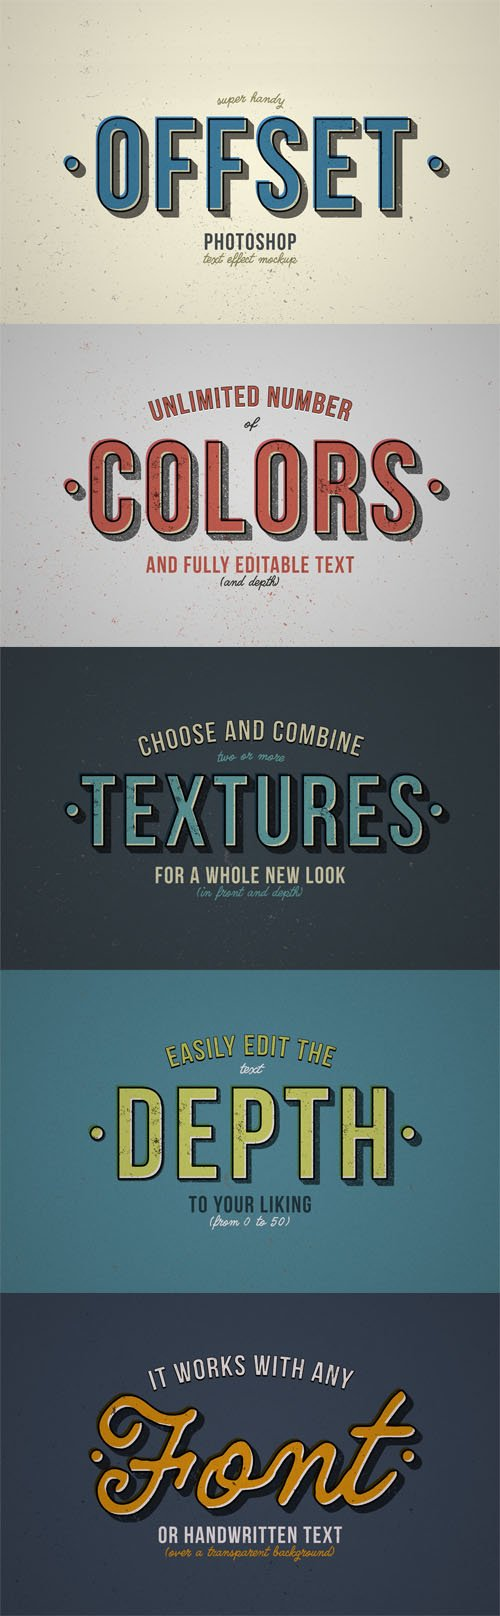 Offset Photoshop Text Effect Mockup